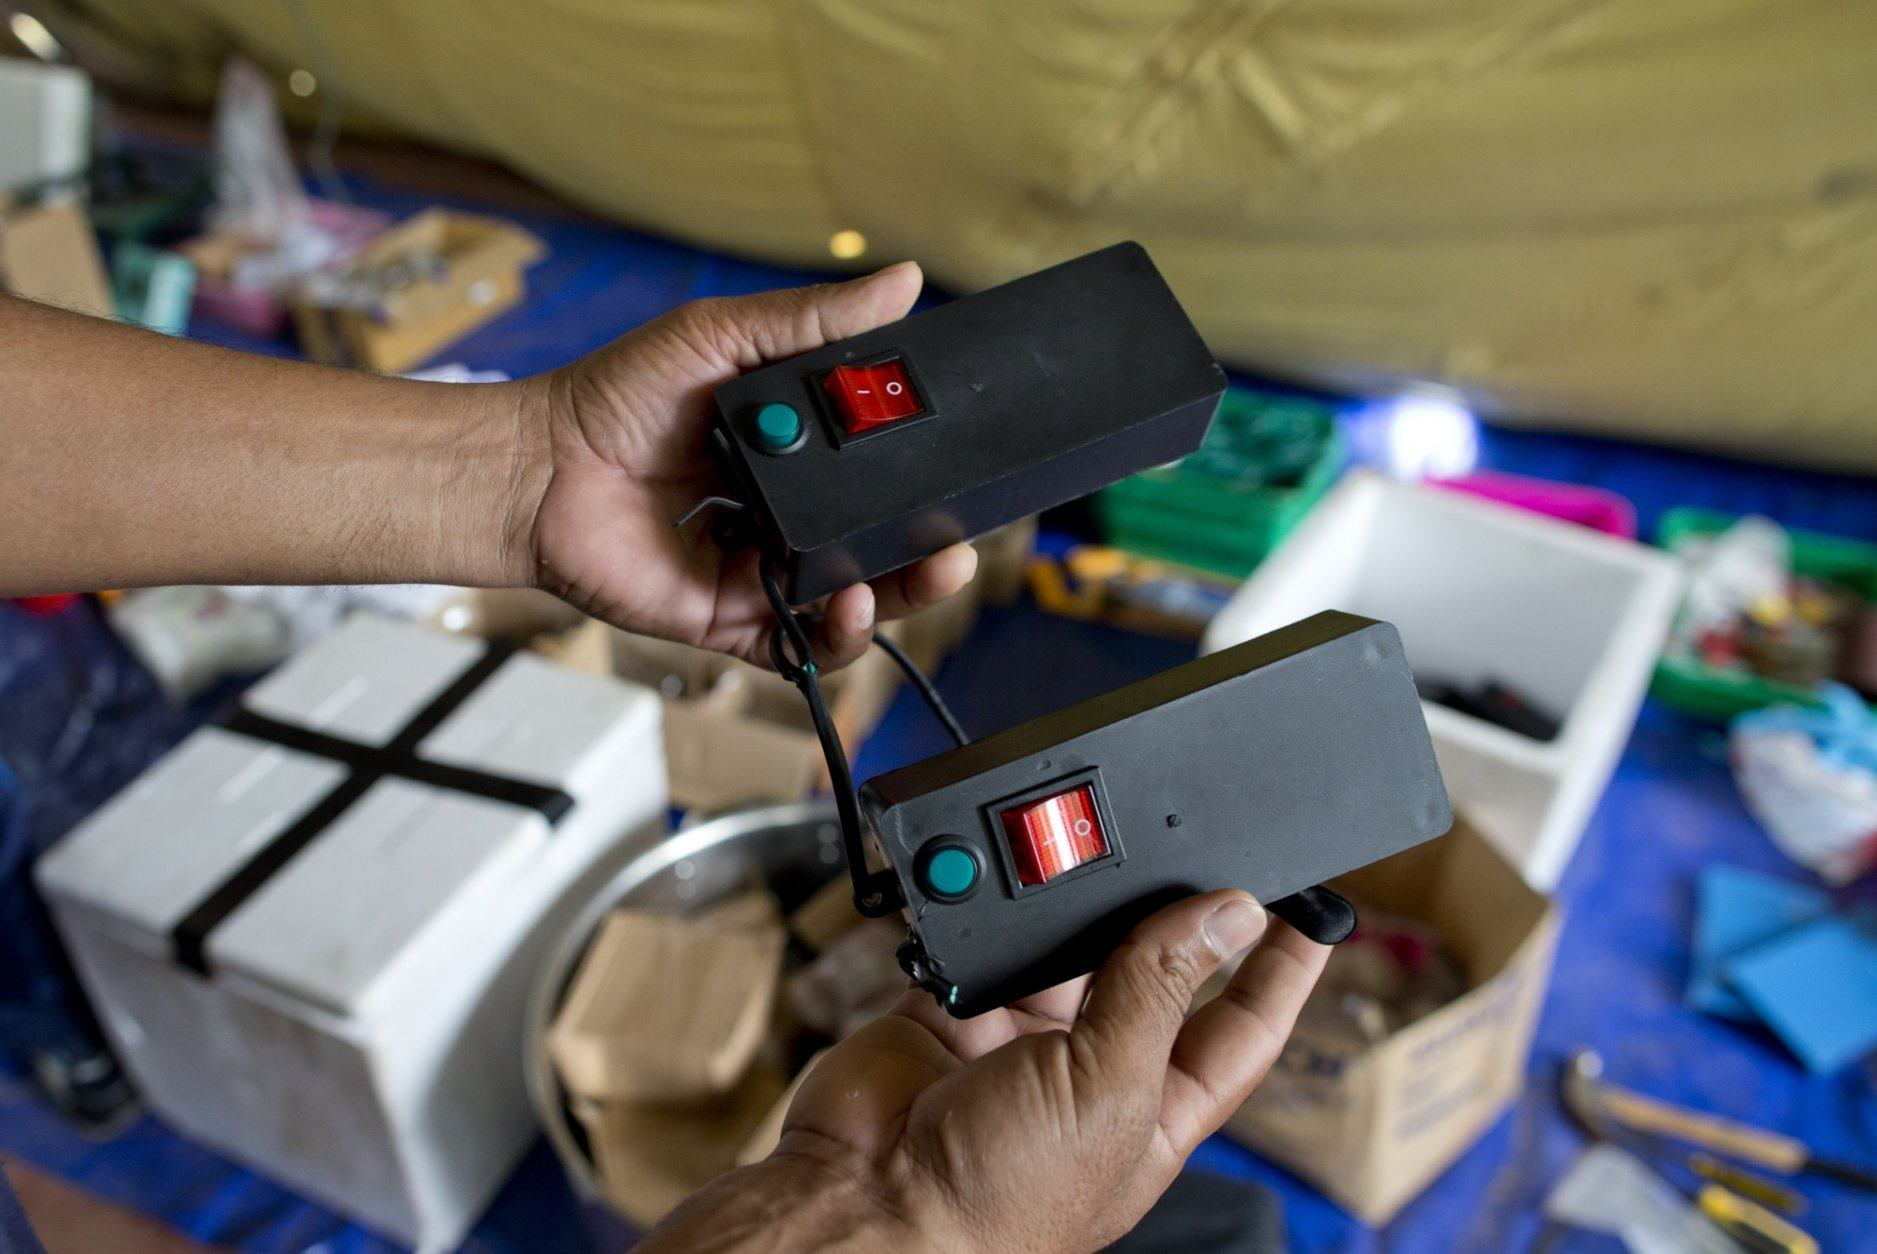 A police officer displays detonators and other bomb making materials in Ampara, Sri Lanka, Sunday, April 28, 2019. Police in Ampara showed The Associated Press on Sunday the explosives, chemicals and Islamic State flag they recovered from the site of one security force raid in the region as Sri Lanka's Catholics celebrated at televised Mass in the safety of their homes. (AP Photo/Gemunu Amarasinghe)